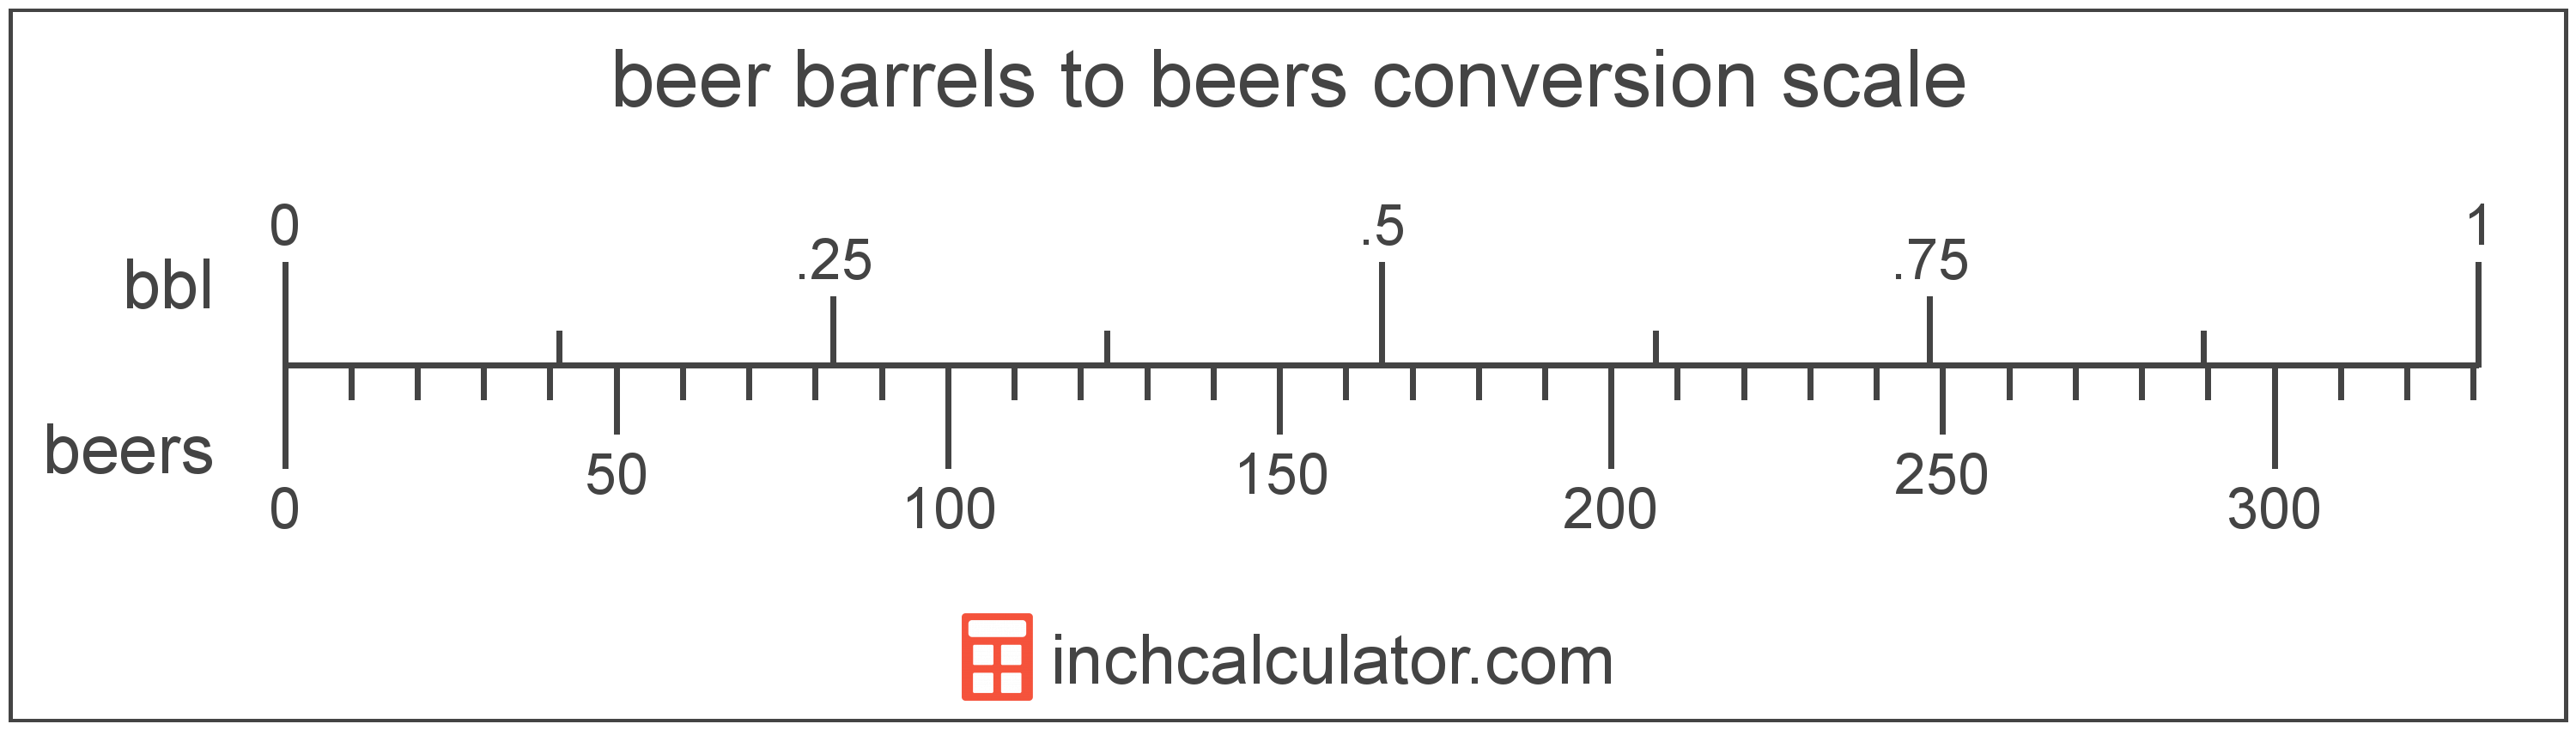 conversion scale showing beer barrels and equivalent beers beer volume values